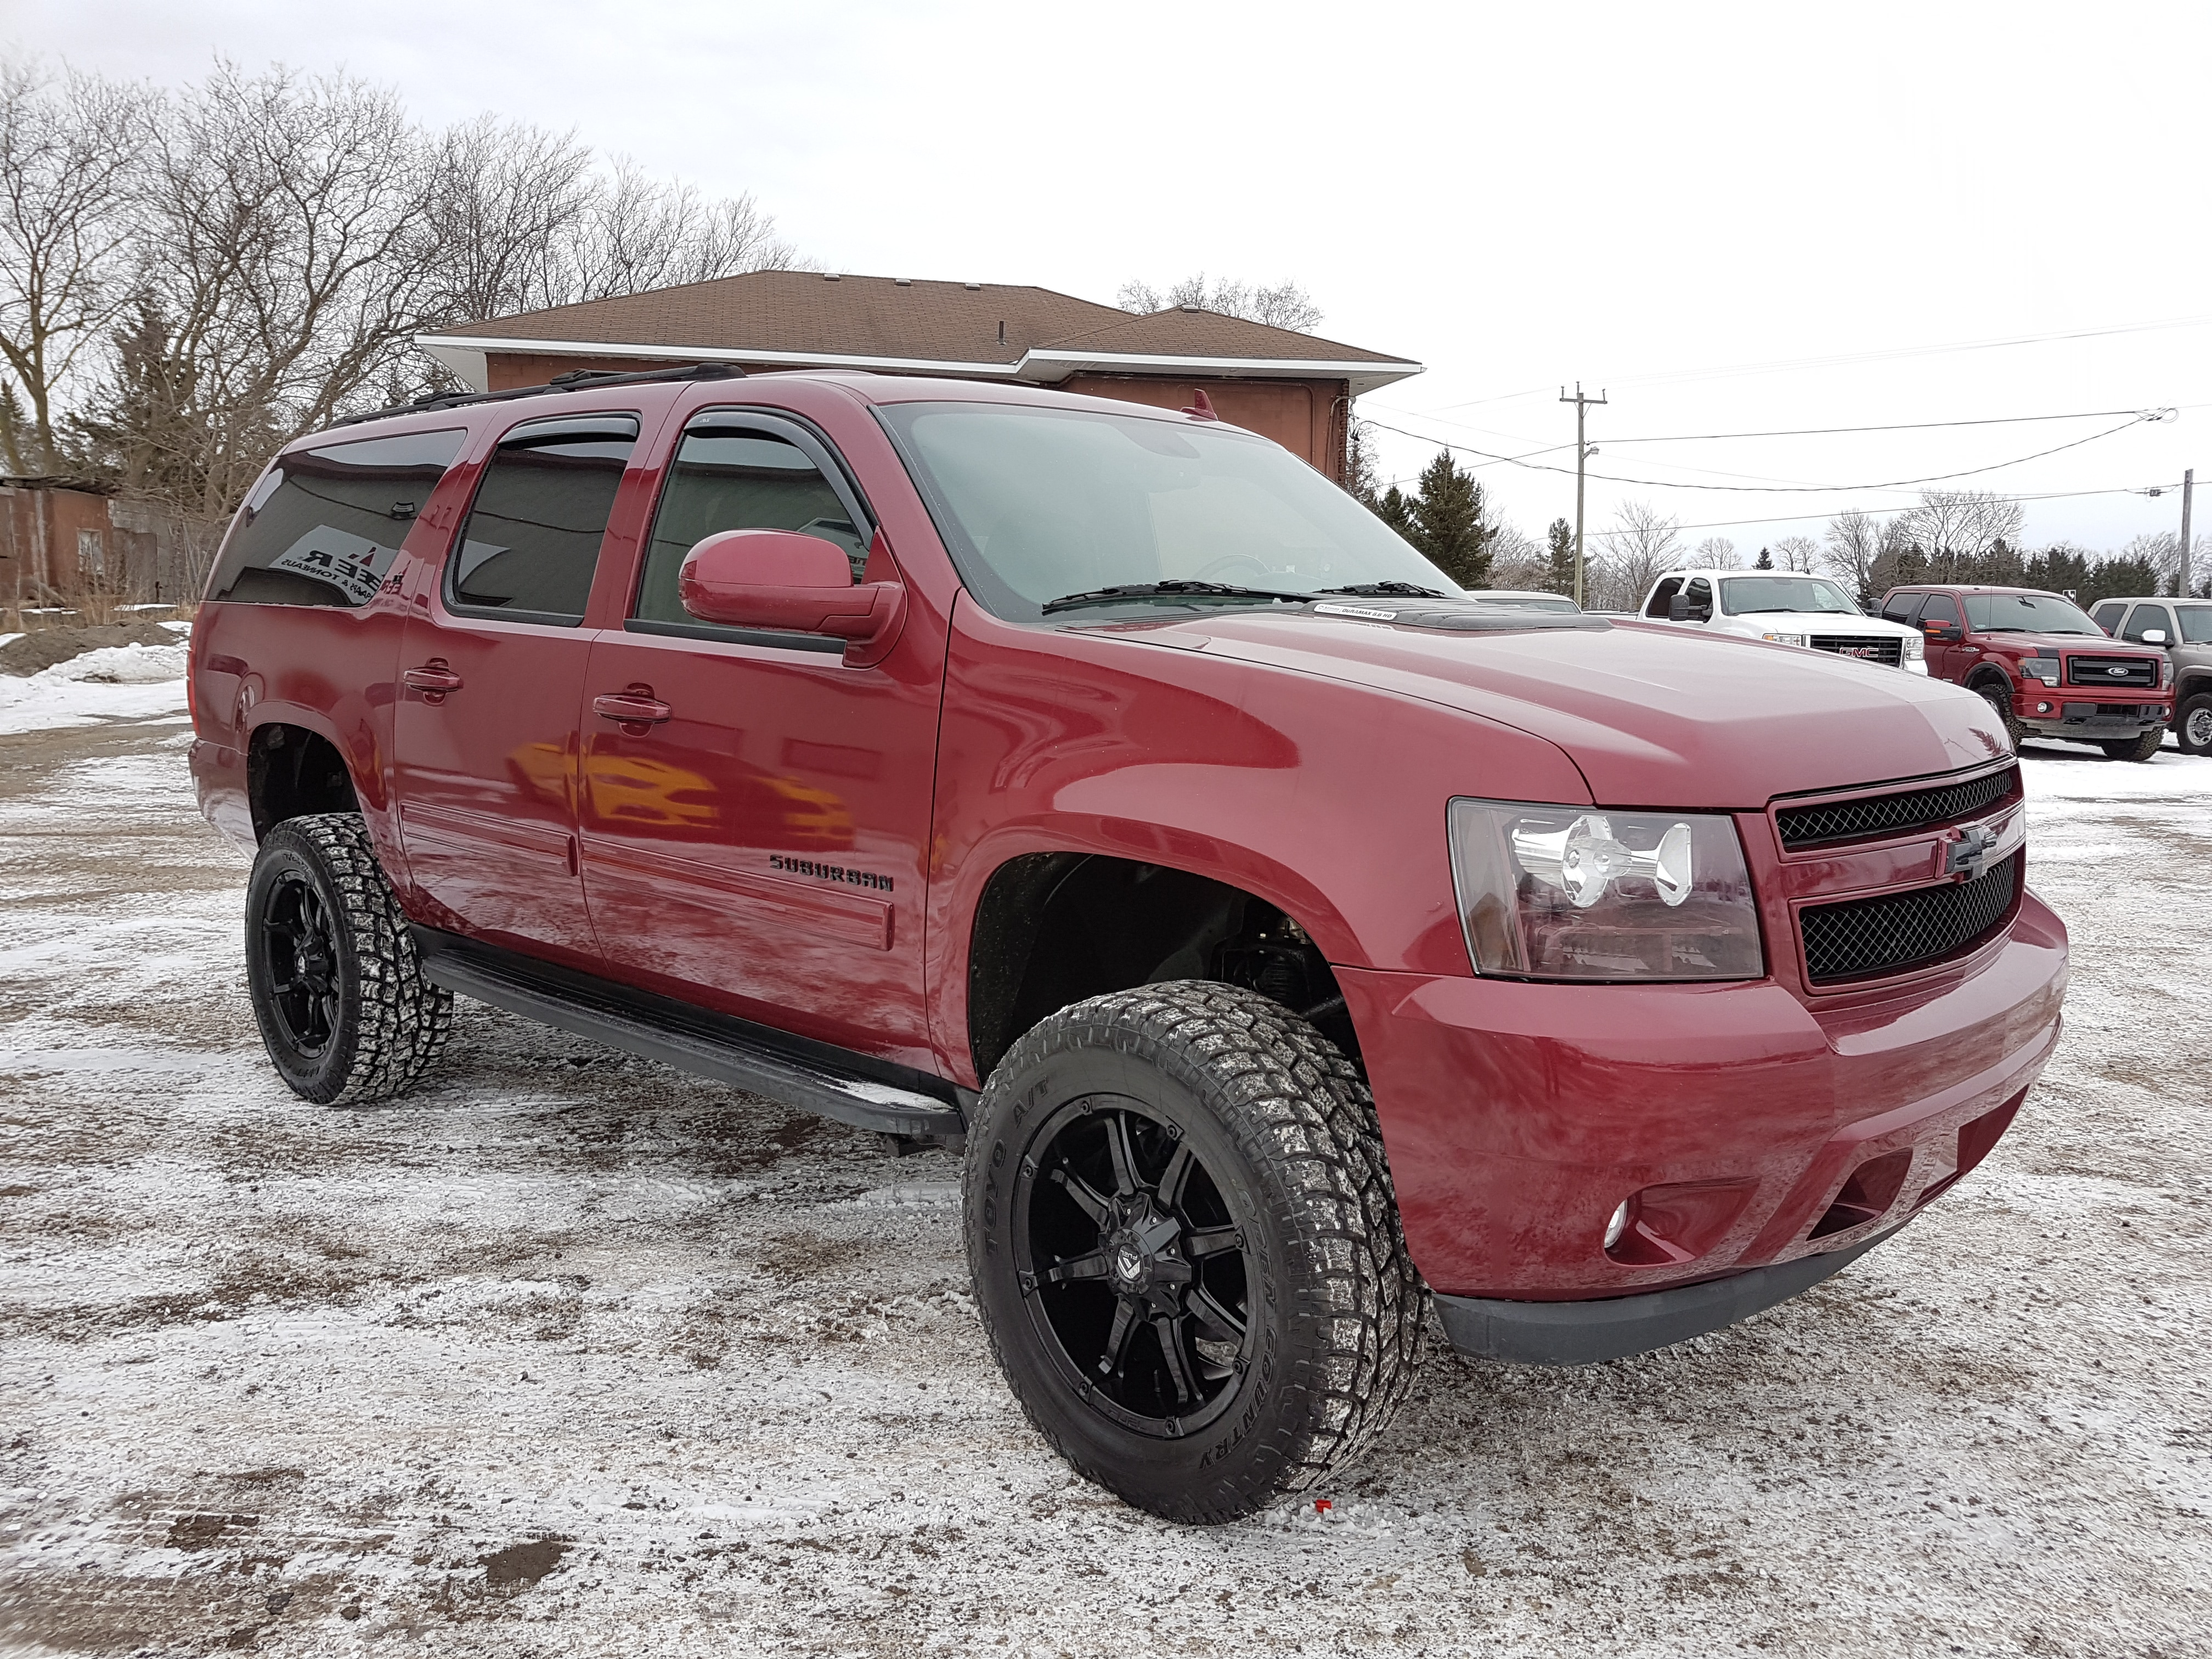 used 2014 chevrolet suburban 2500hd duramax diesel for sale belleville on. Black Bedroom Furniture Sets. Home Design Ideas